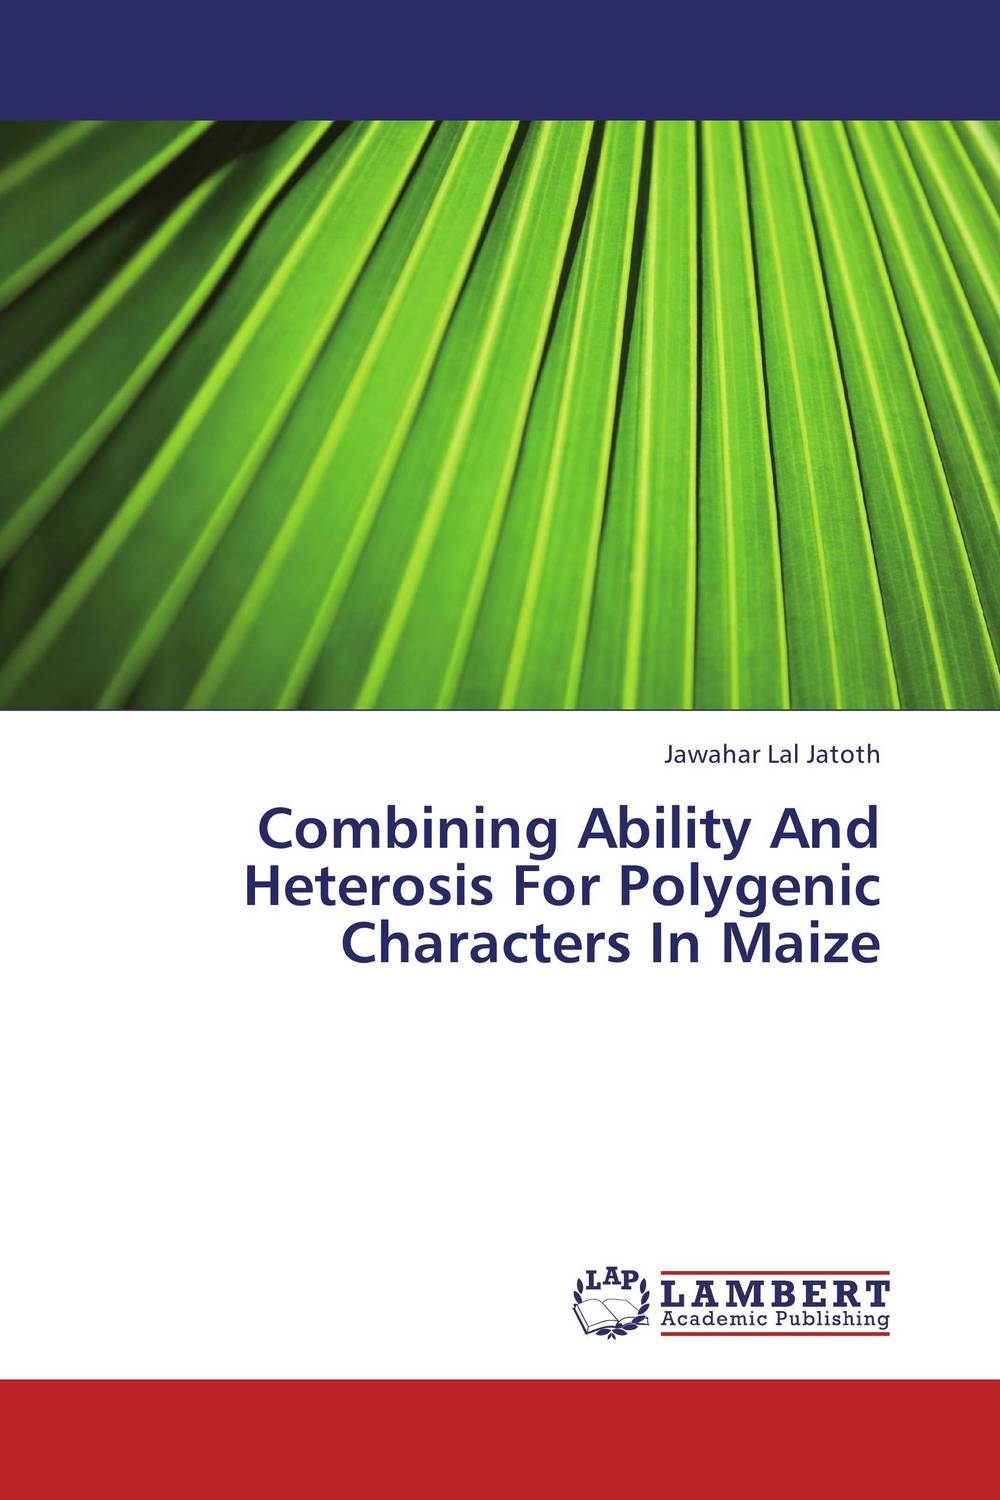 Combining Ability And Heterosis For Polygenic Characters In Maize